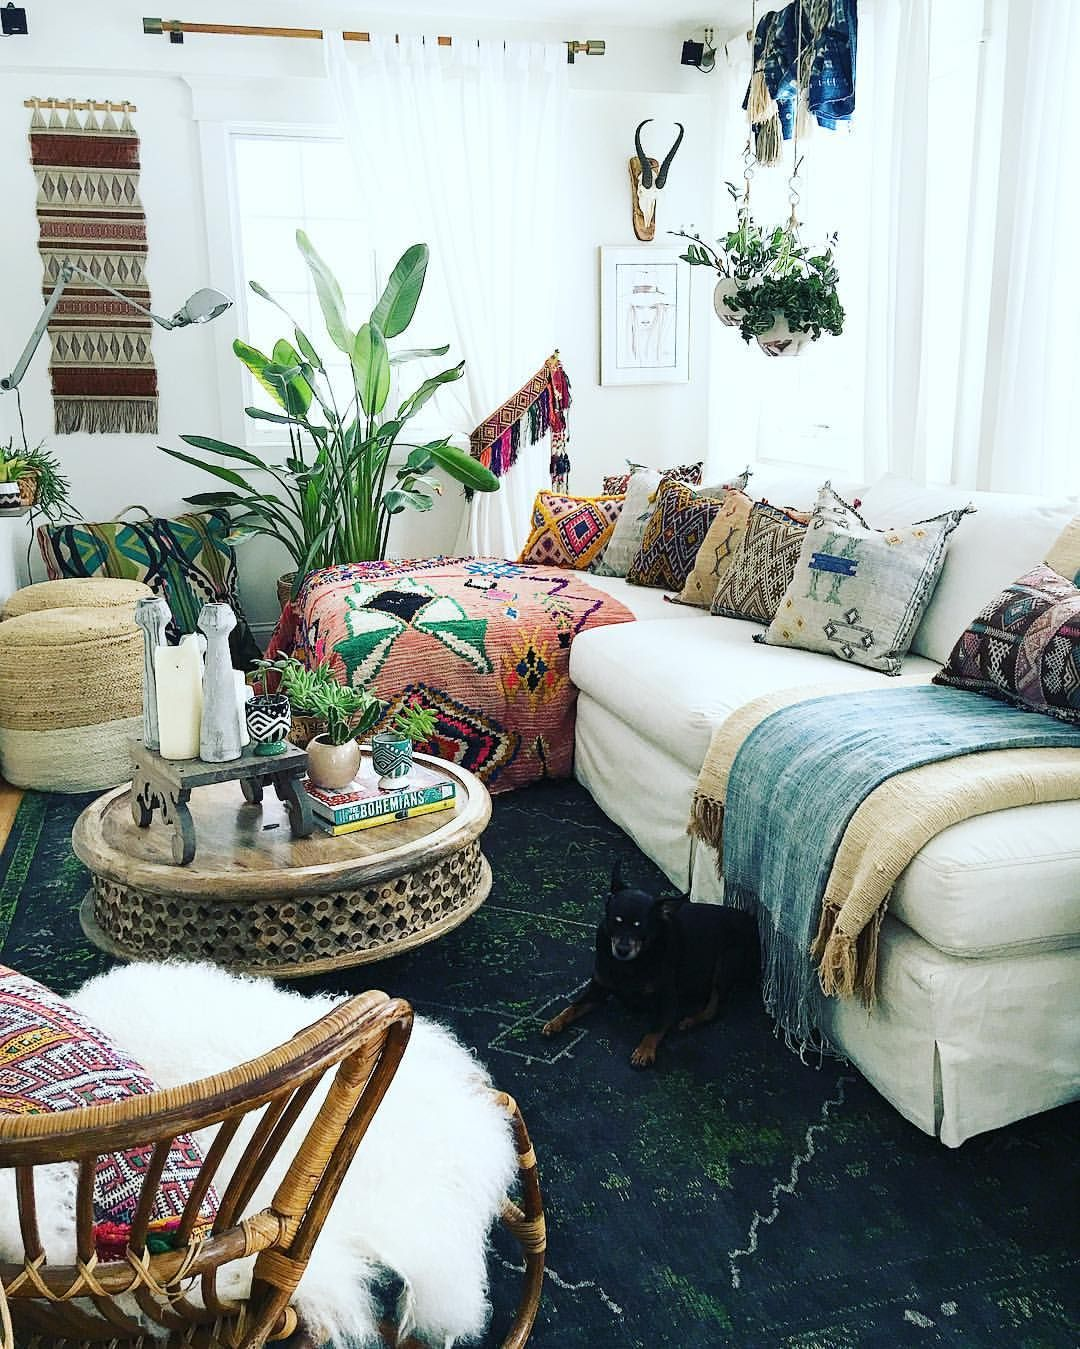 You Can Add Rugs Not Only On Floors But On Sofas Too That 39 S A Great Way To Bring Add Bohemian Style Living Room Bohemian Living Rooms Bohemian Living Room